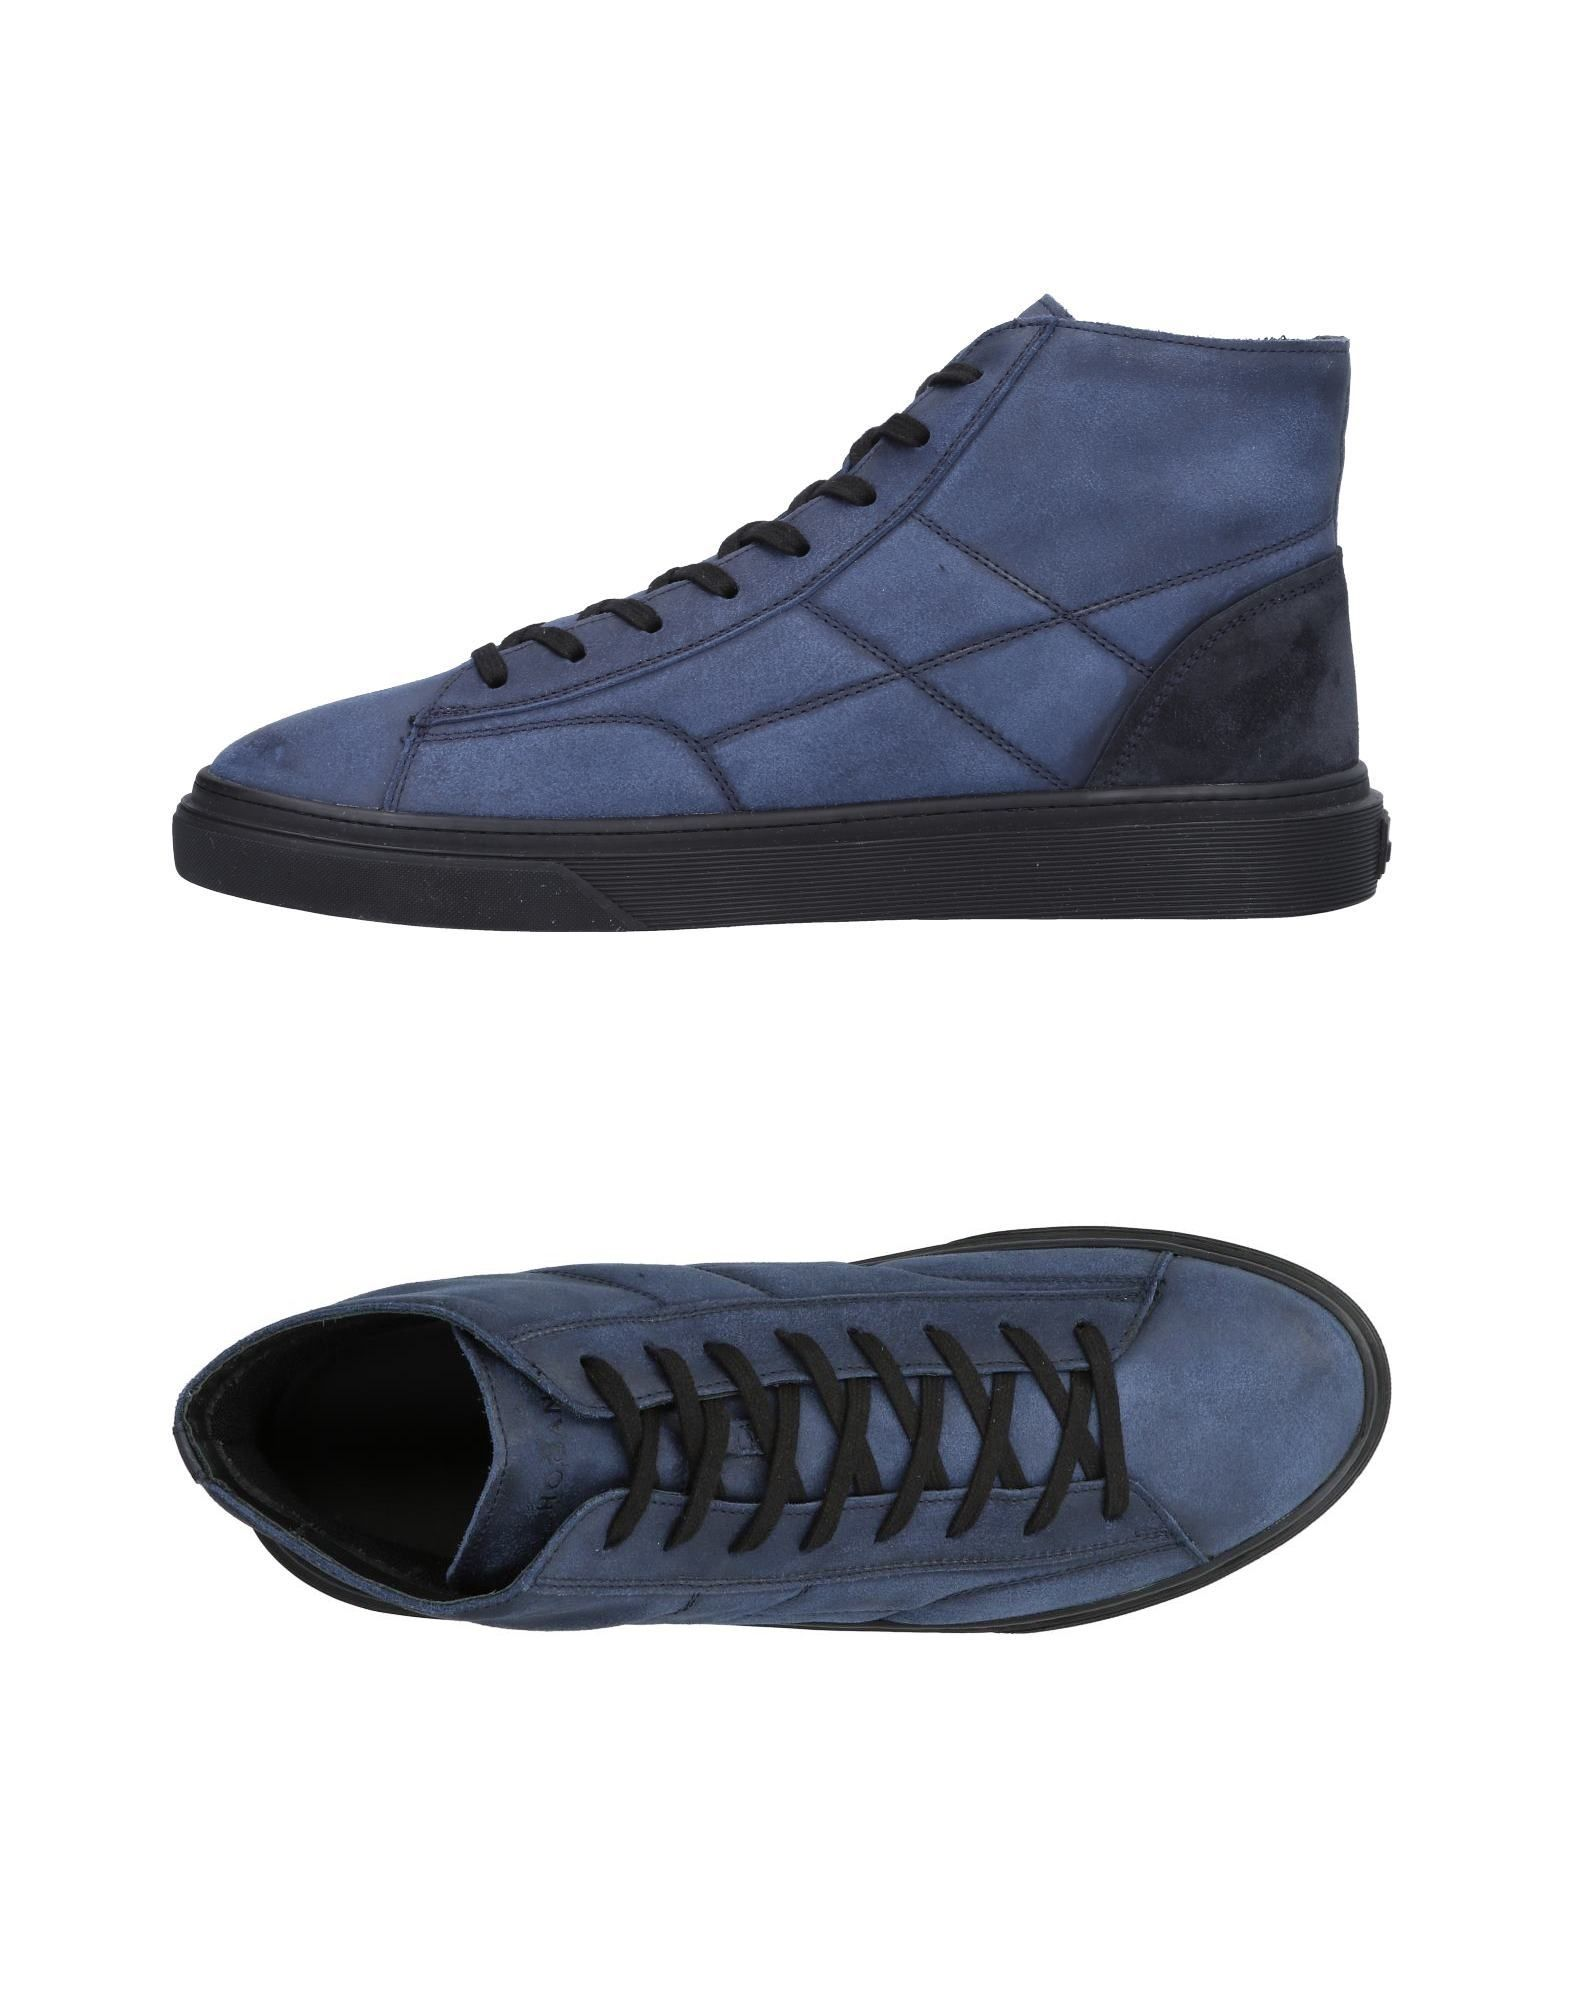 Sneakers Hogan Homme - Sneakers Hogan  Moka Chaussures casual sauvages